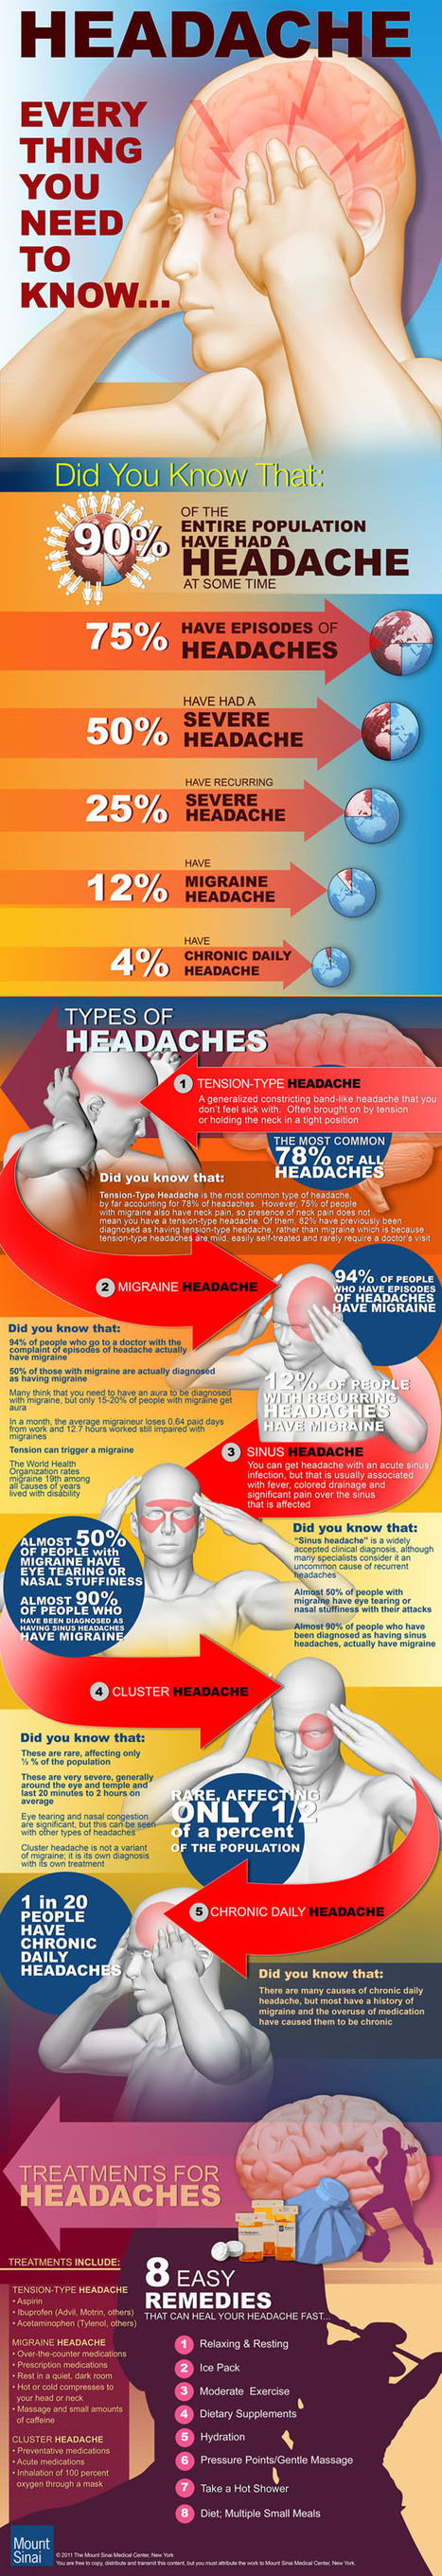 90% Of World Population Suffering From Headache [How to Prevent] | HealthSmart | Scoop.it